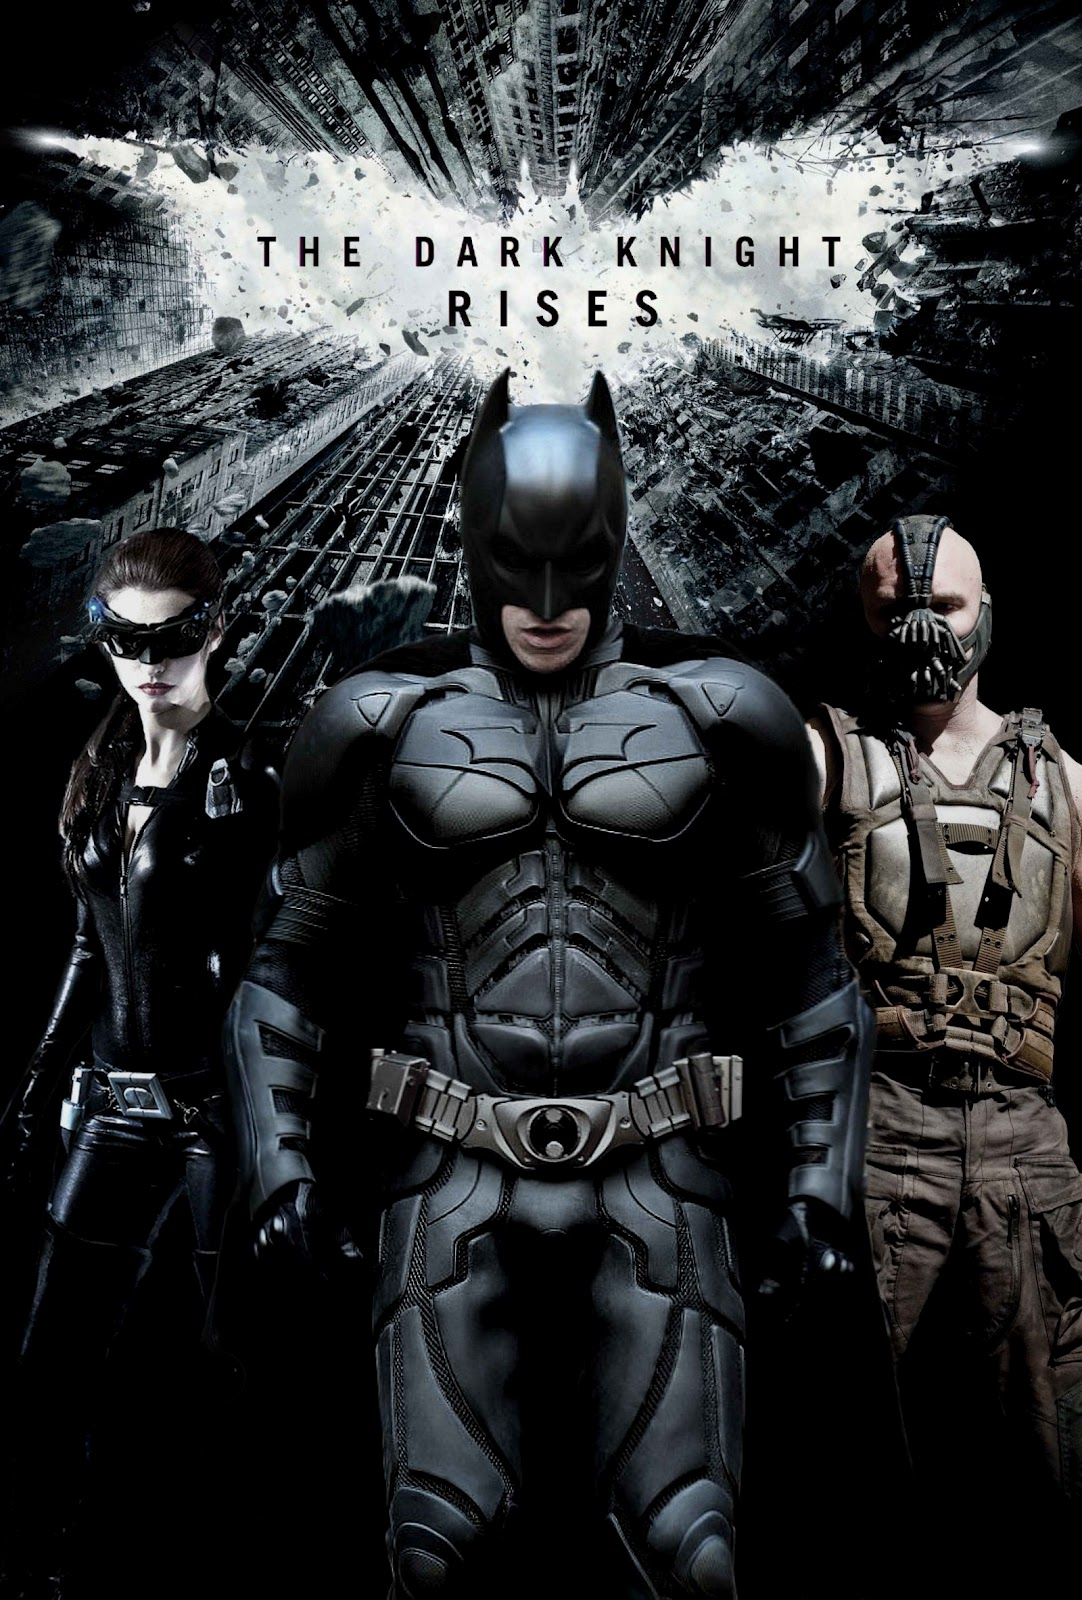 dark knight rises full movie online free